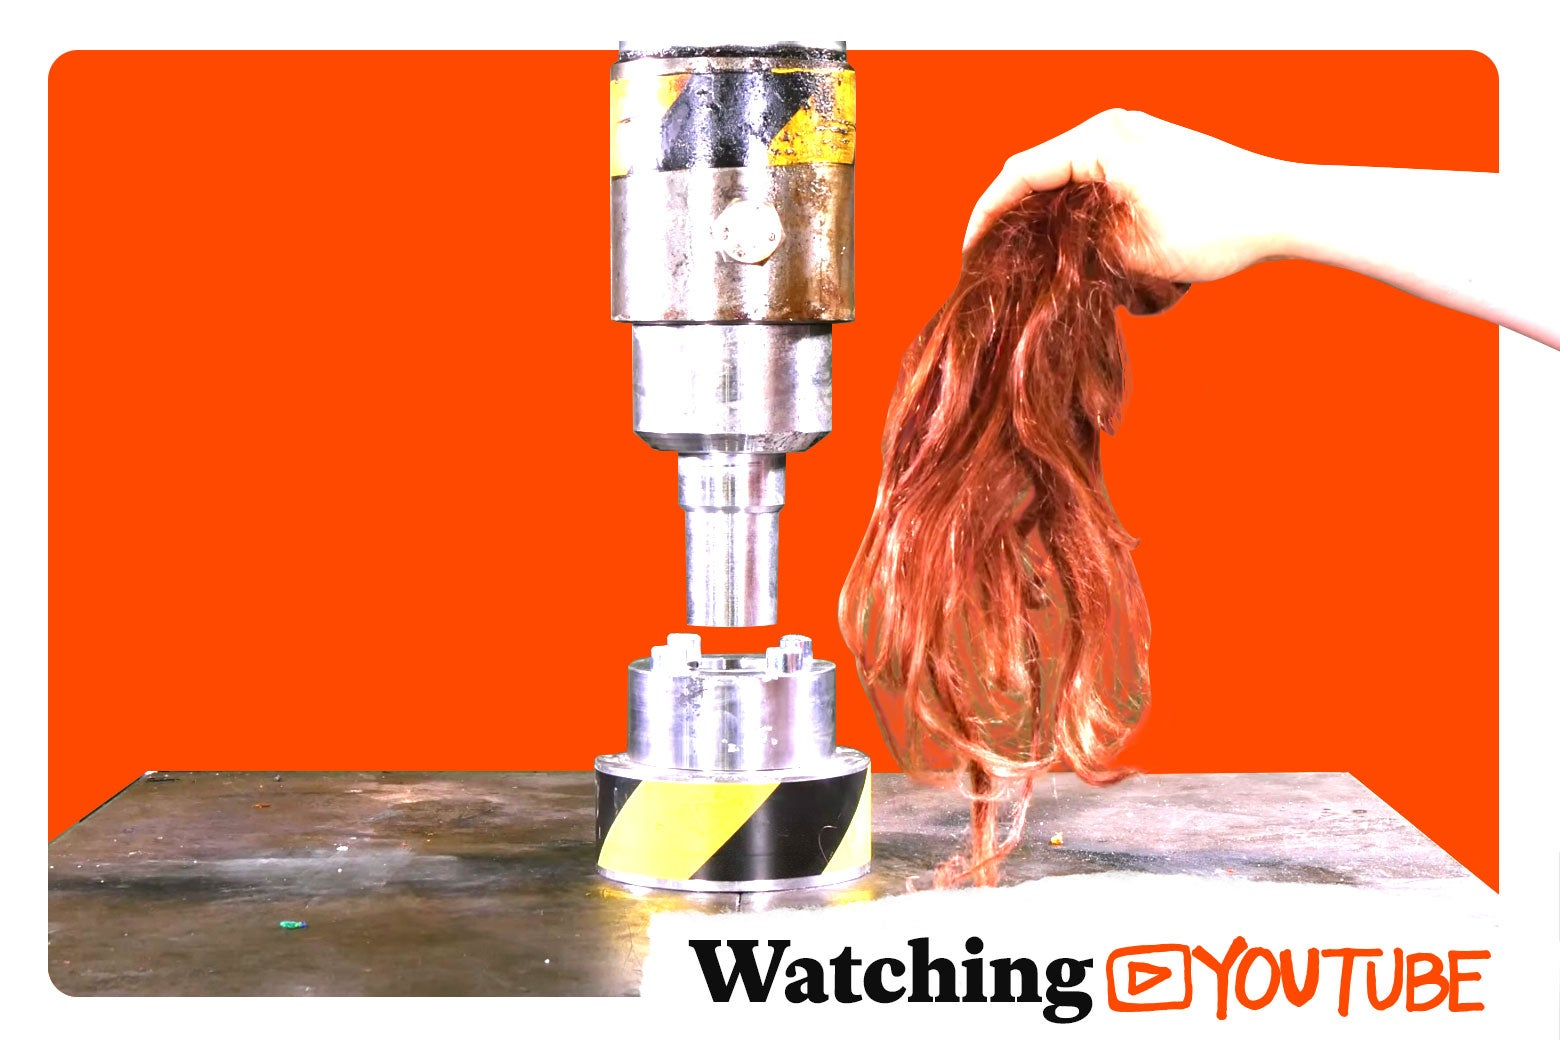 Photo illustration: a still from the Hydraulic Press YouTube channel with the Watching YouTube logo superimposed.